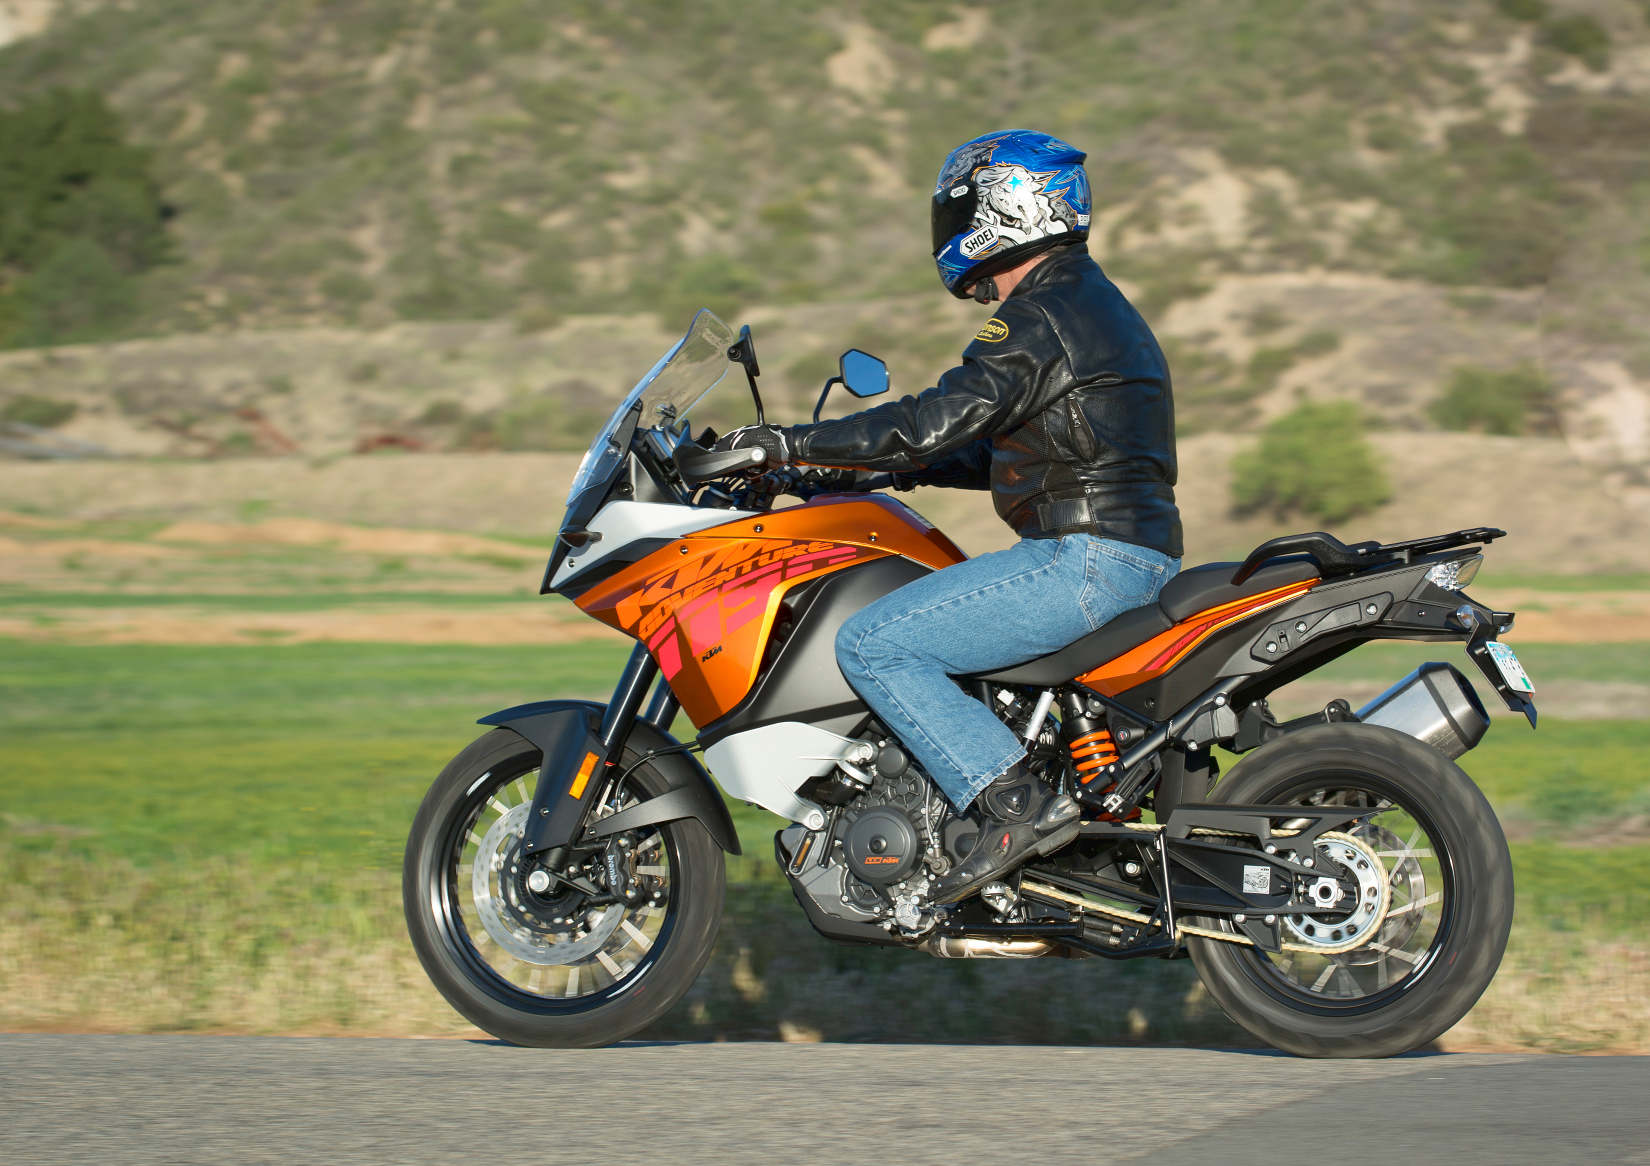 2014 KTM 1190 Adventure: MD Ride Review, Part 1